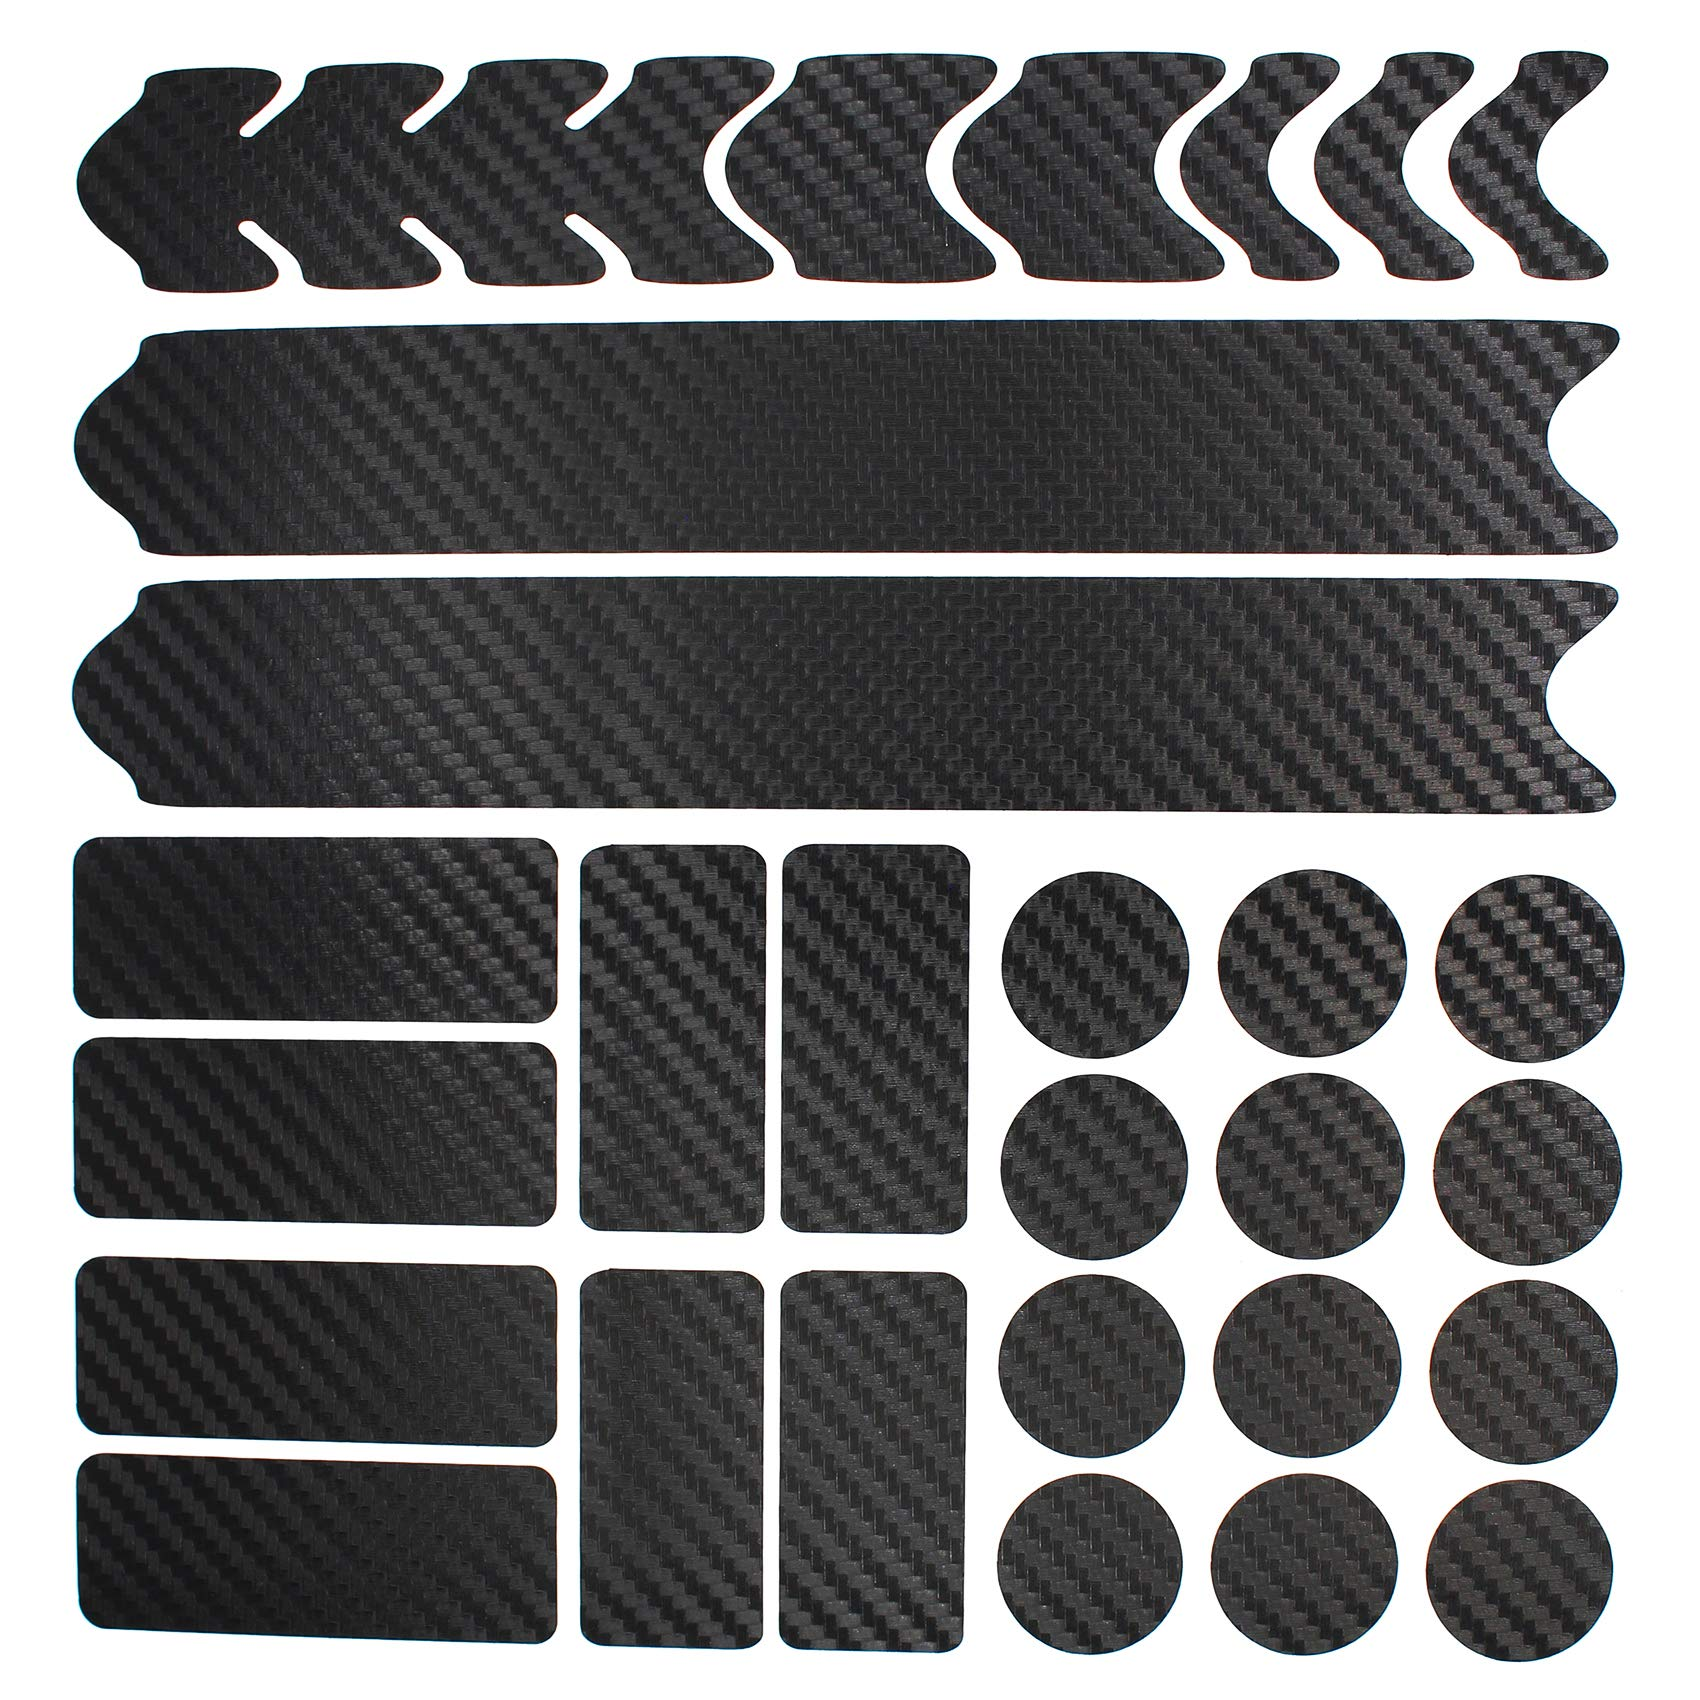 Bicycle Sticker Protector Frame Protection BMX 27 pieces in Carbon Black MTB